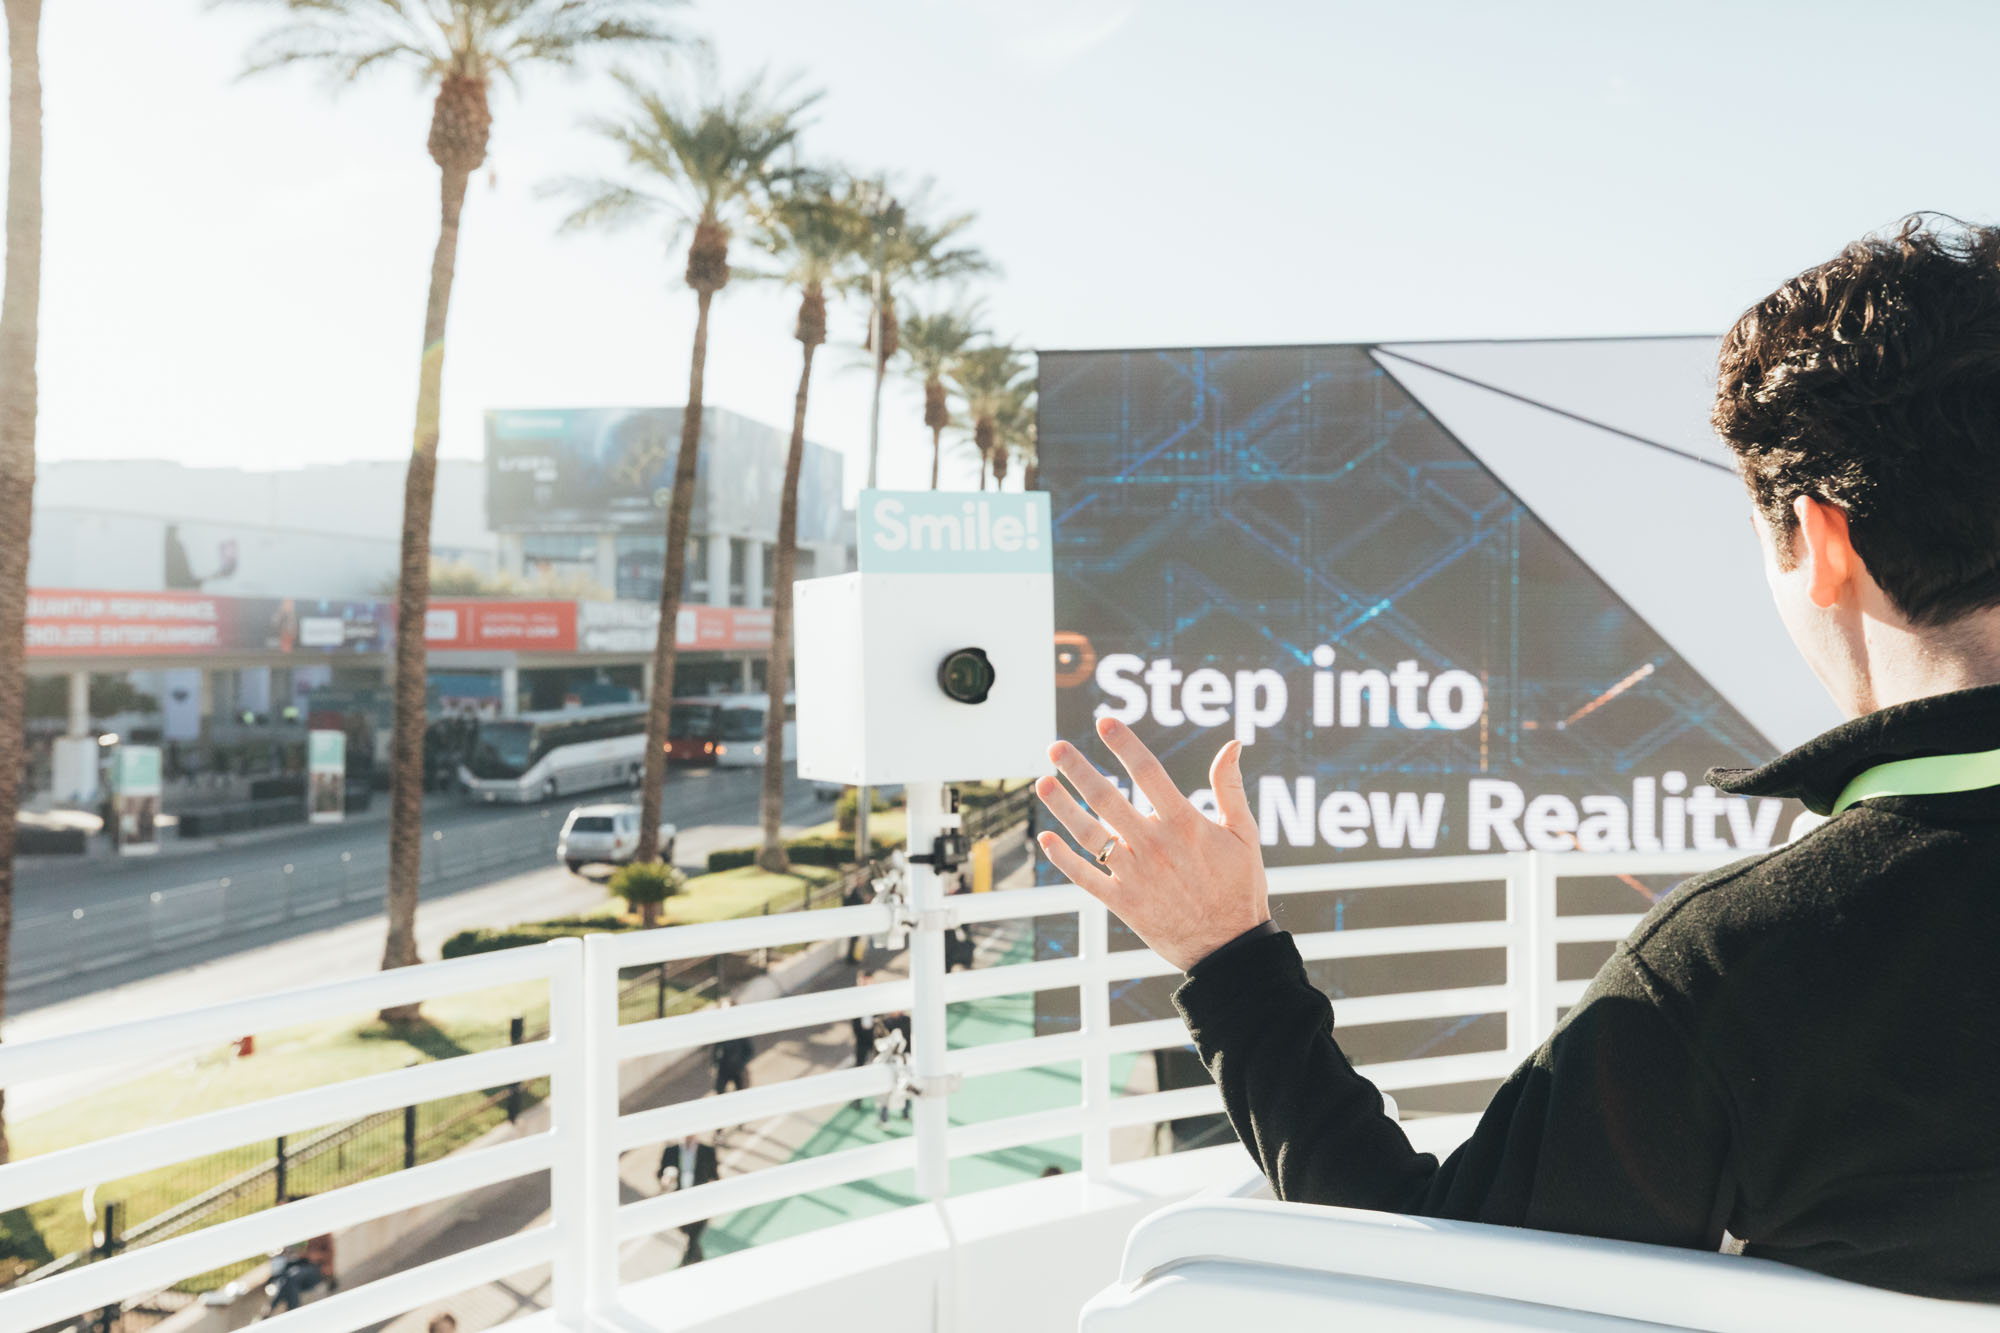 CES 2019 Photo Experience